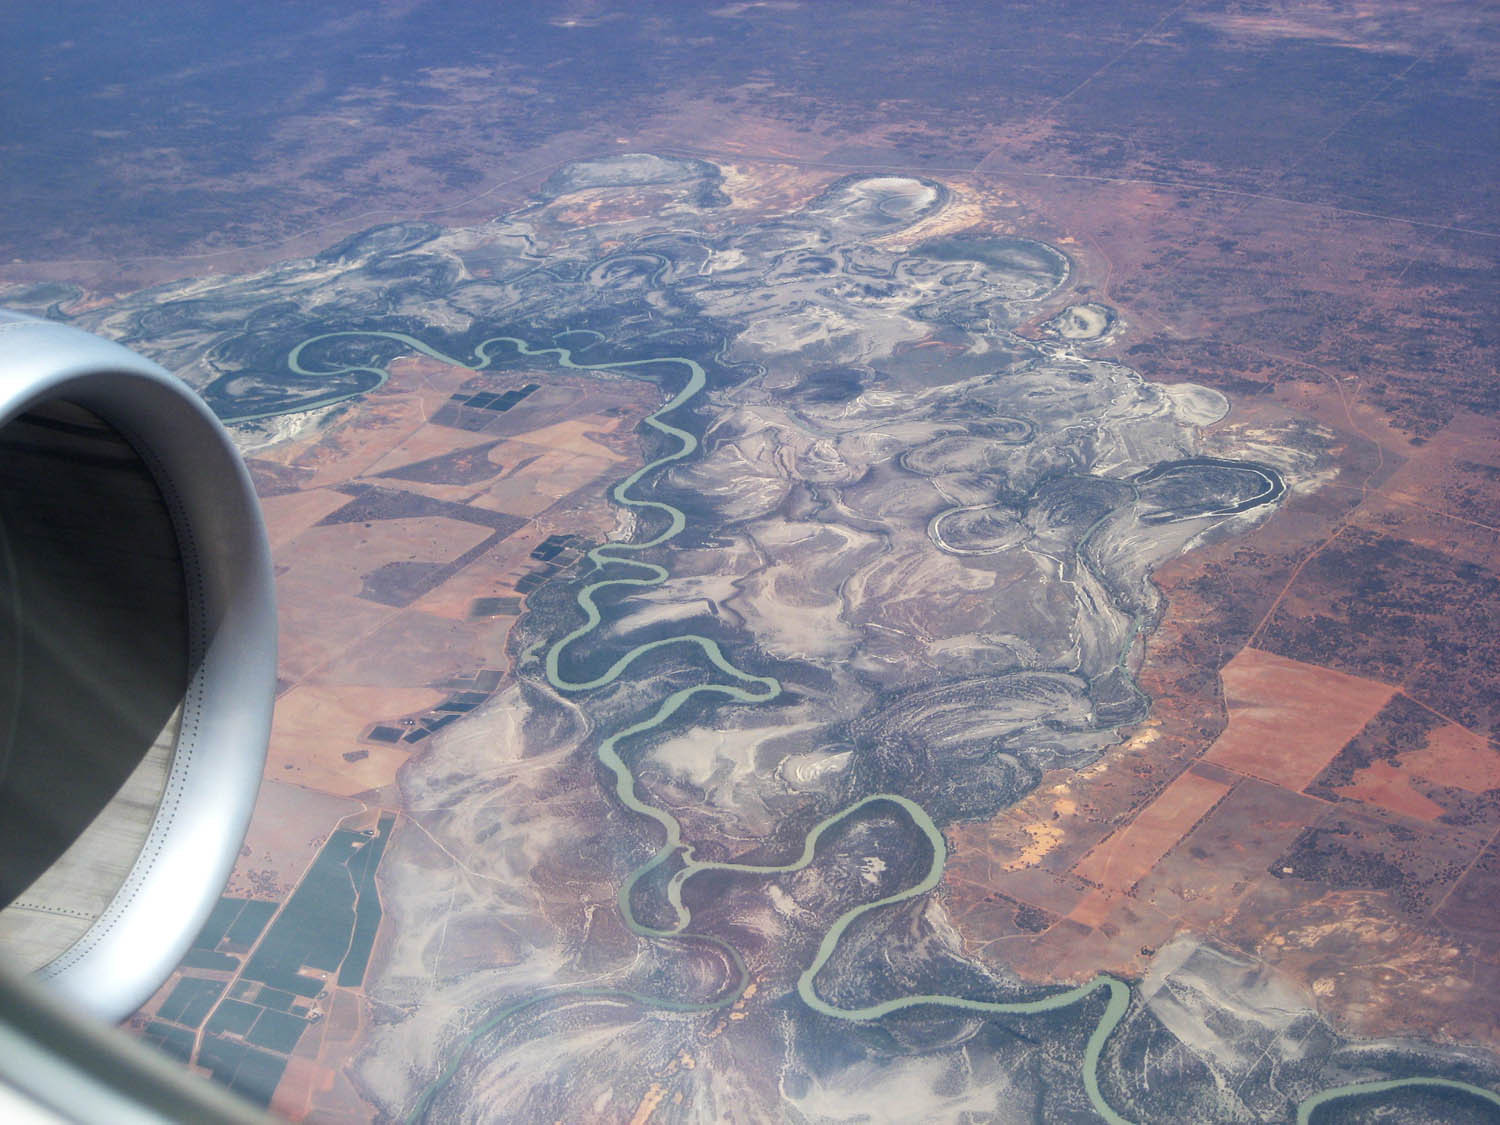 Meandering Murray River in South Australia (or maybe Victoria)